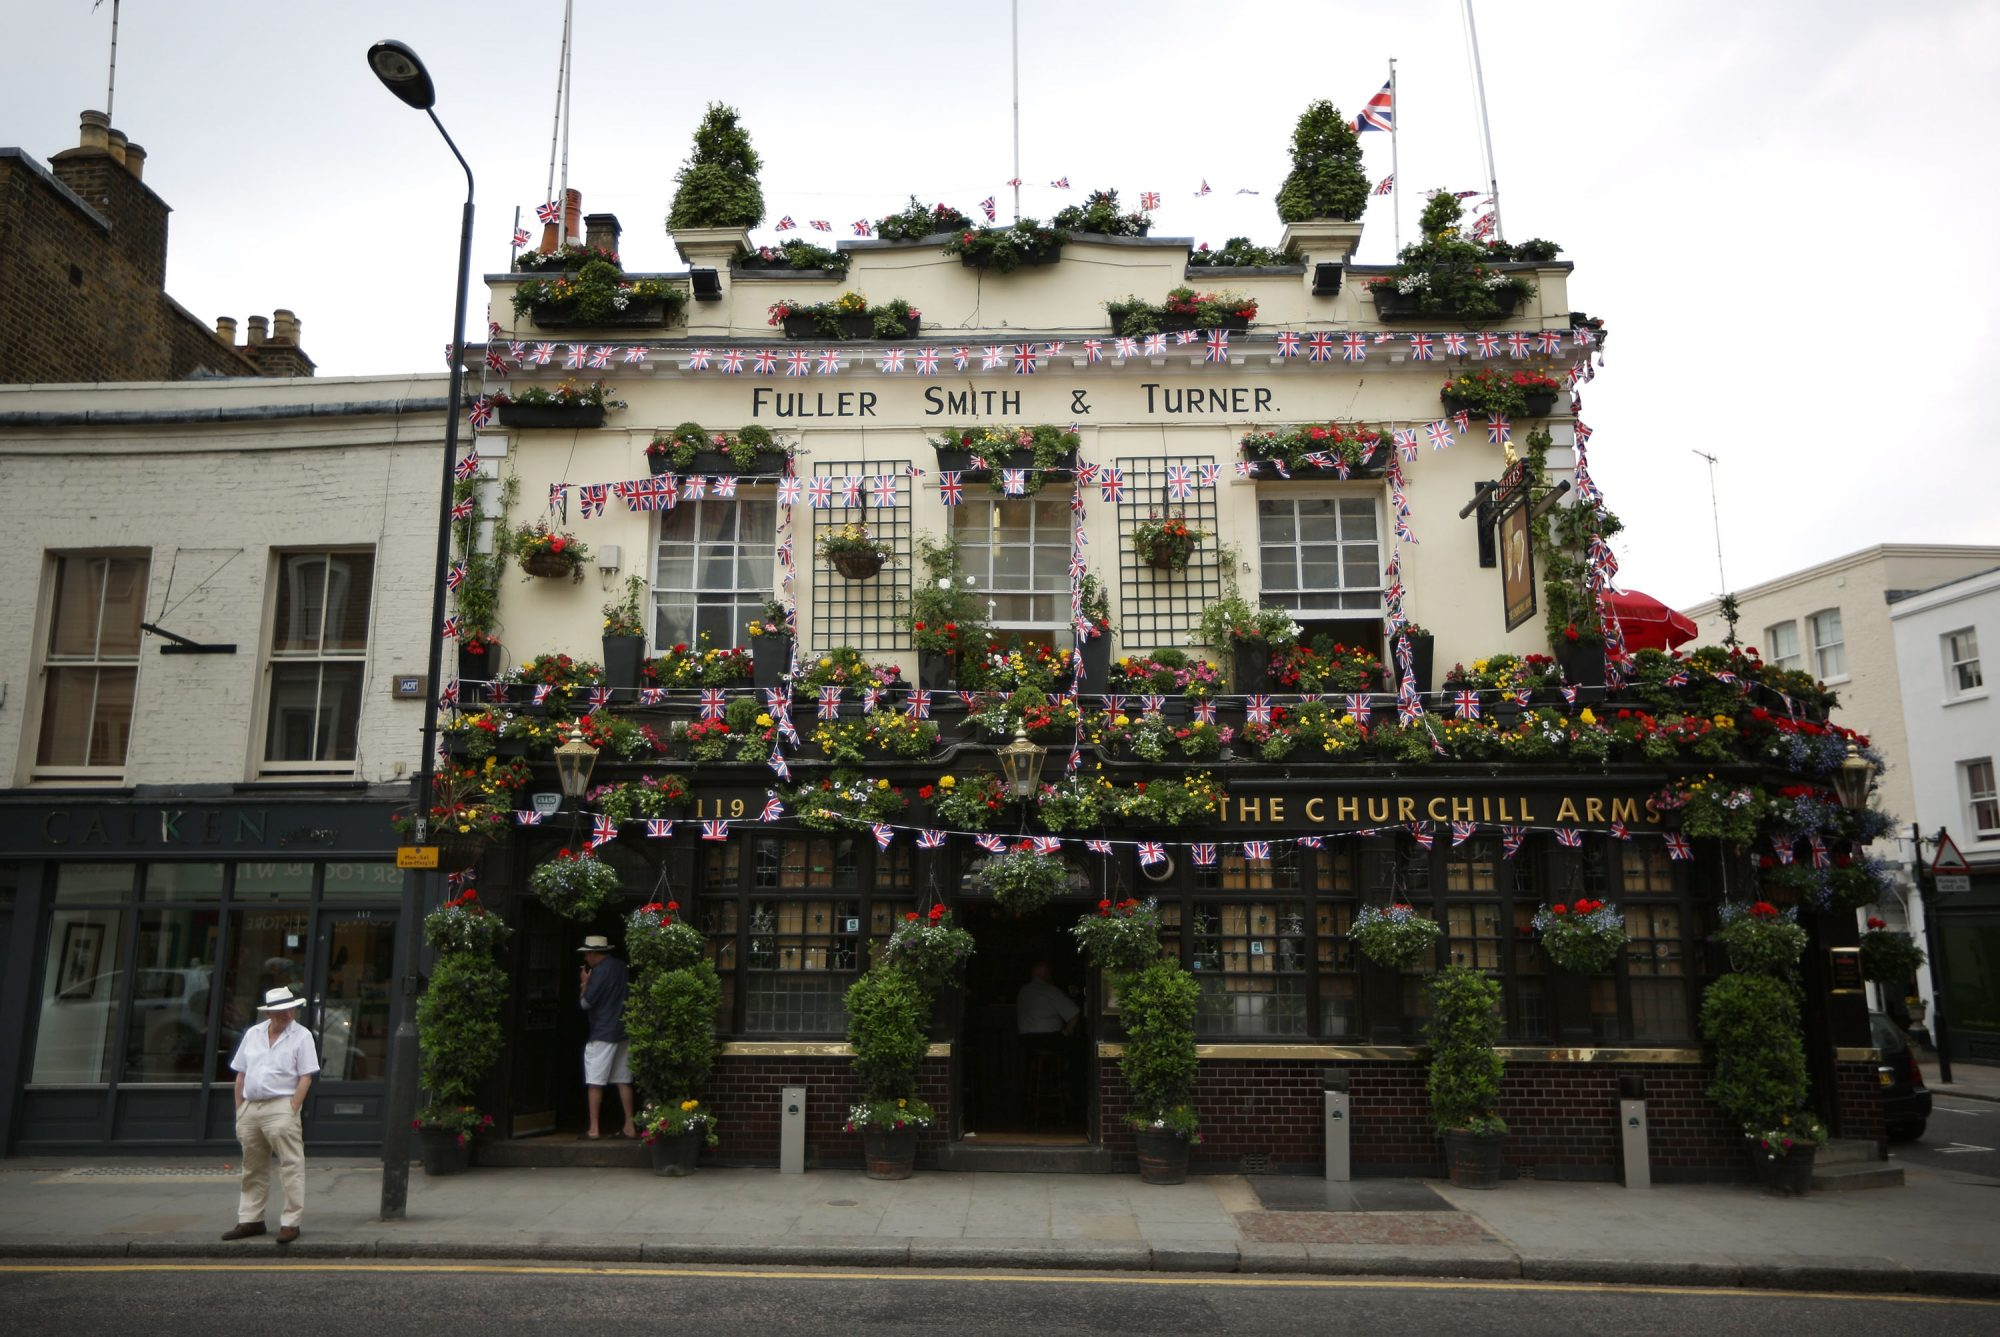 The Classic British Pub Tries to Survive in Challenging Times